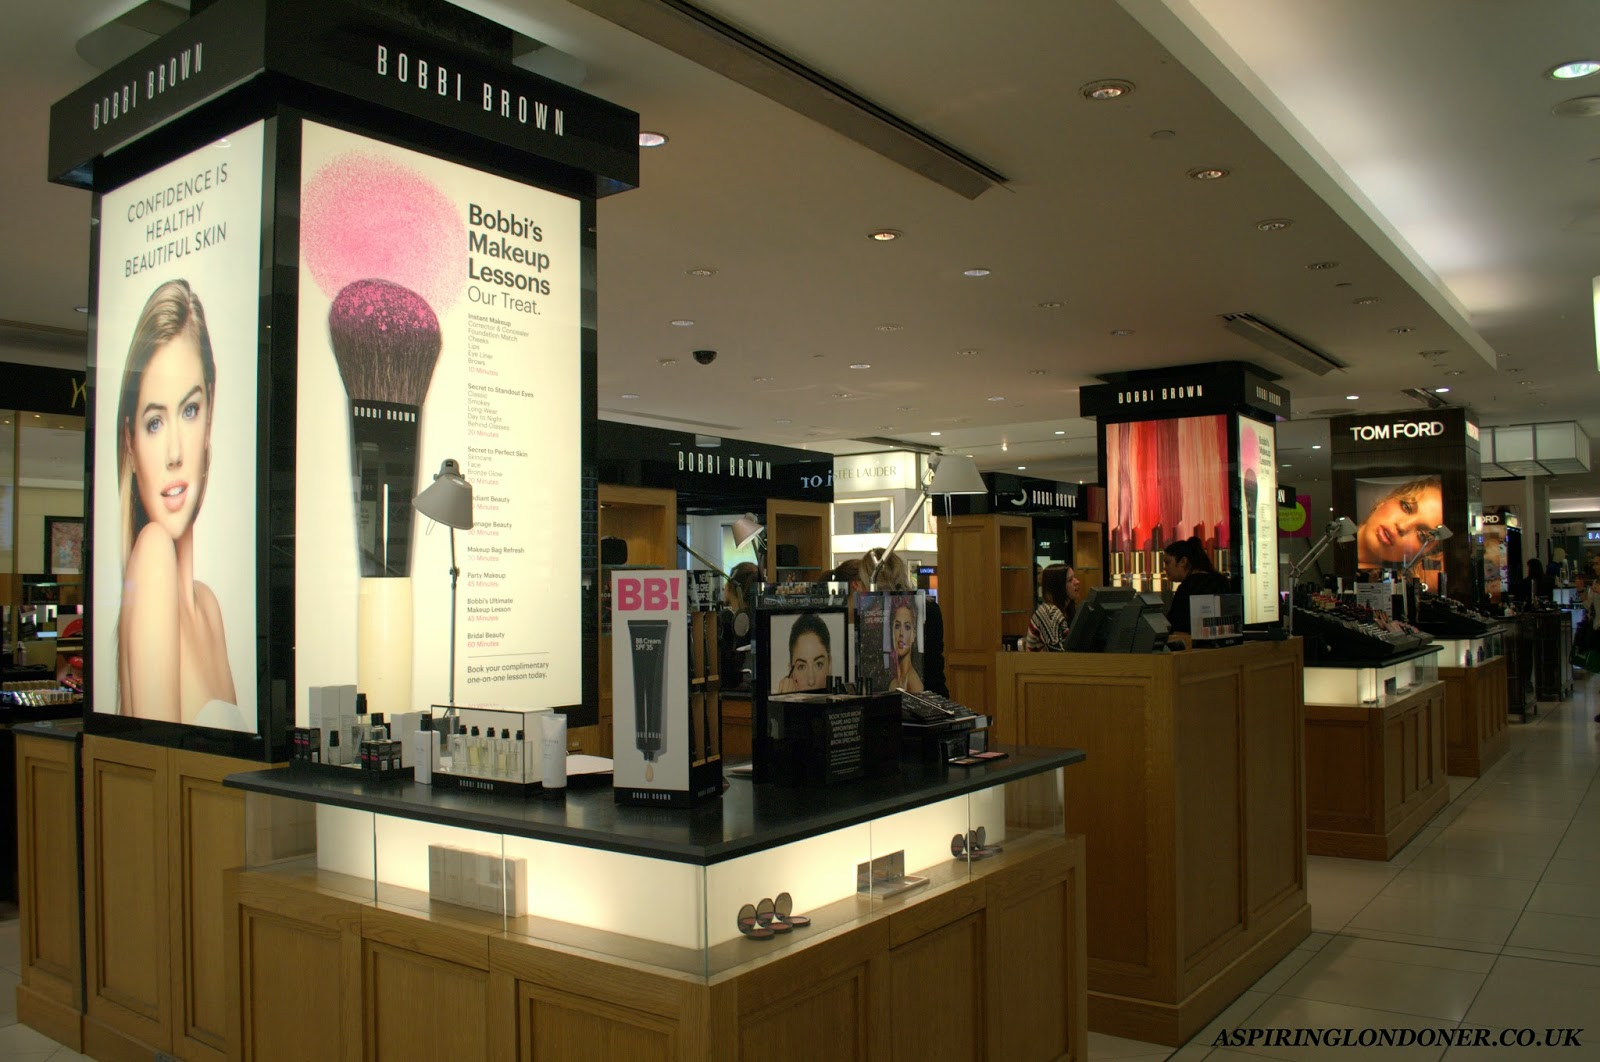 Newcastle Fenwick Beauty Week Bobbi Brown Complimentary Makeup Lessons - Aspiring Londoner